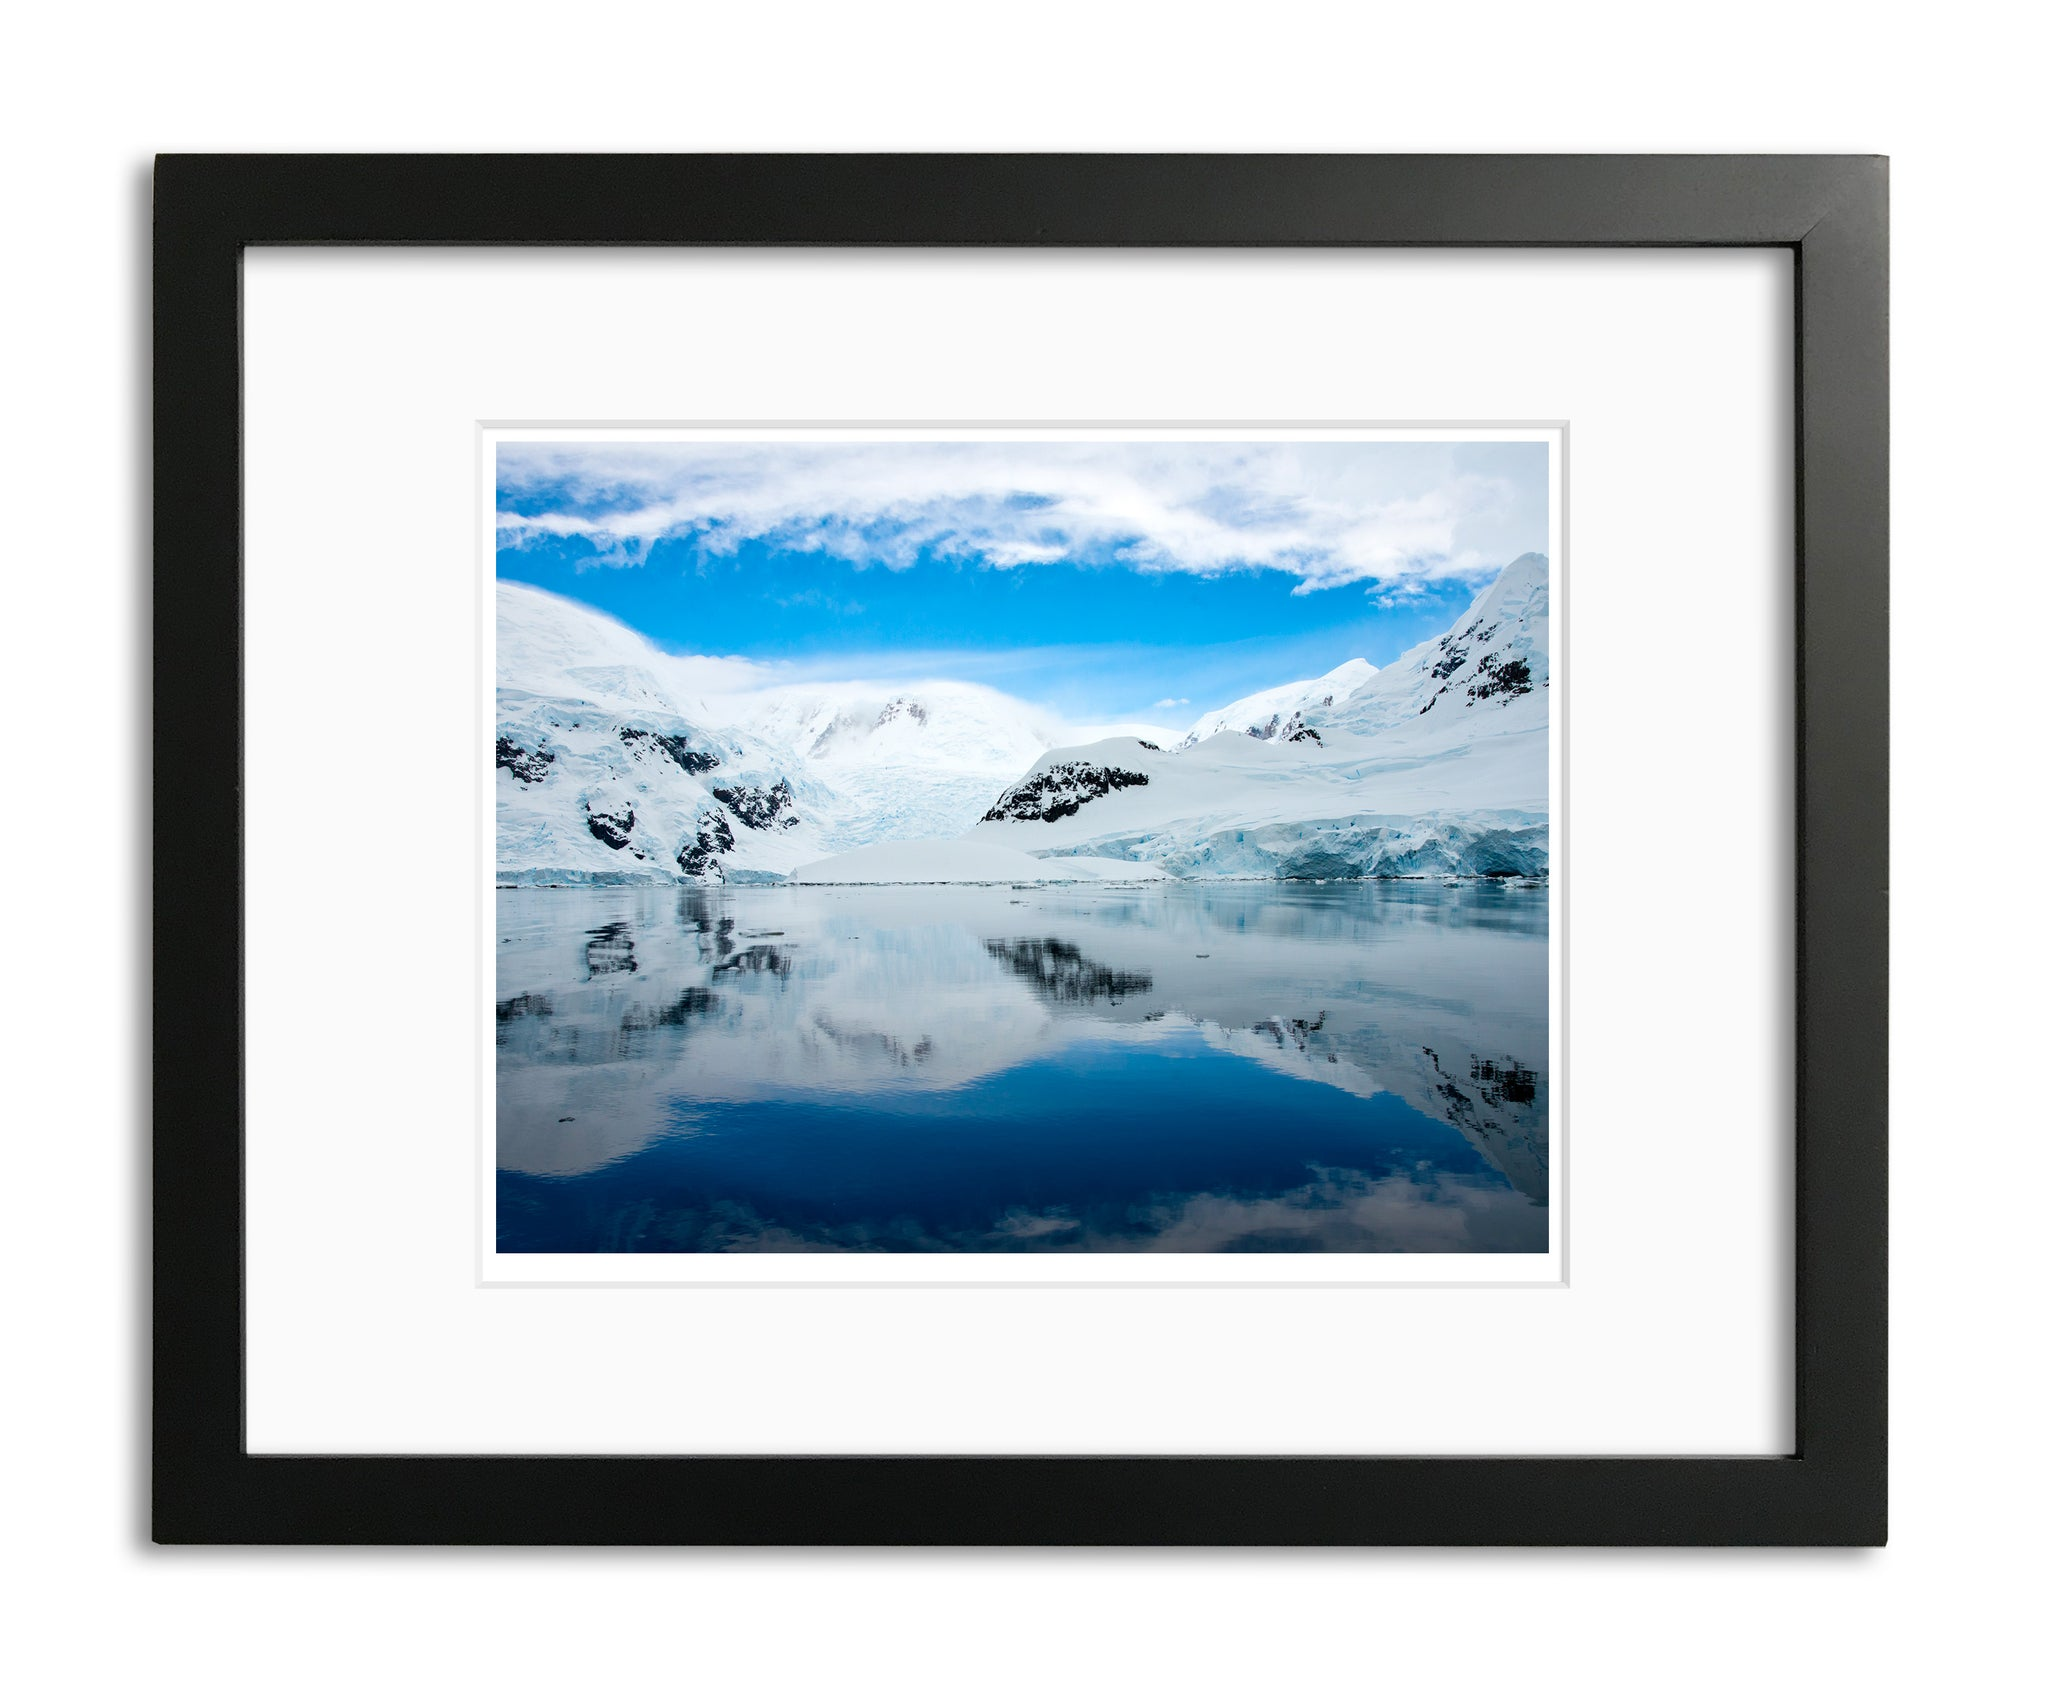 Reflections, Antarctica shoreline, by Robert Ross